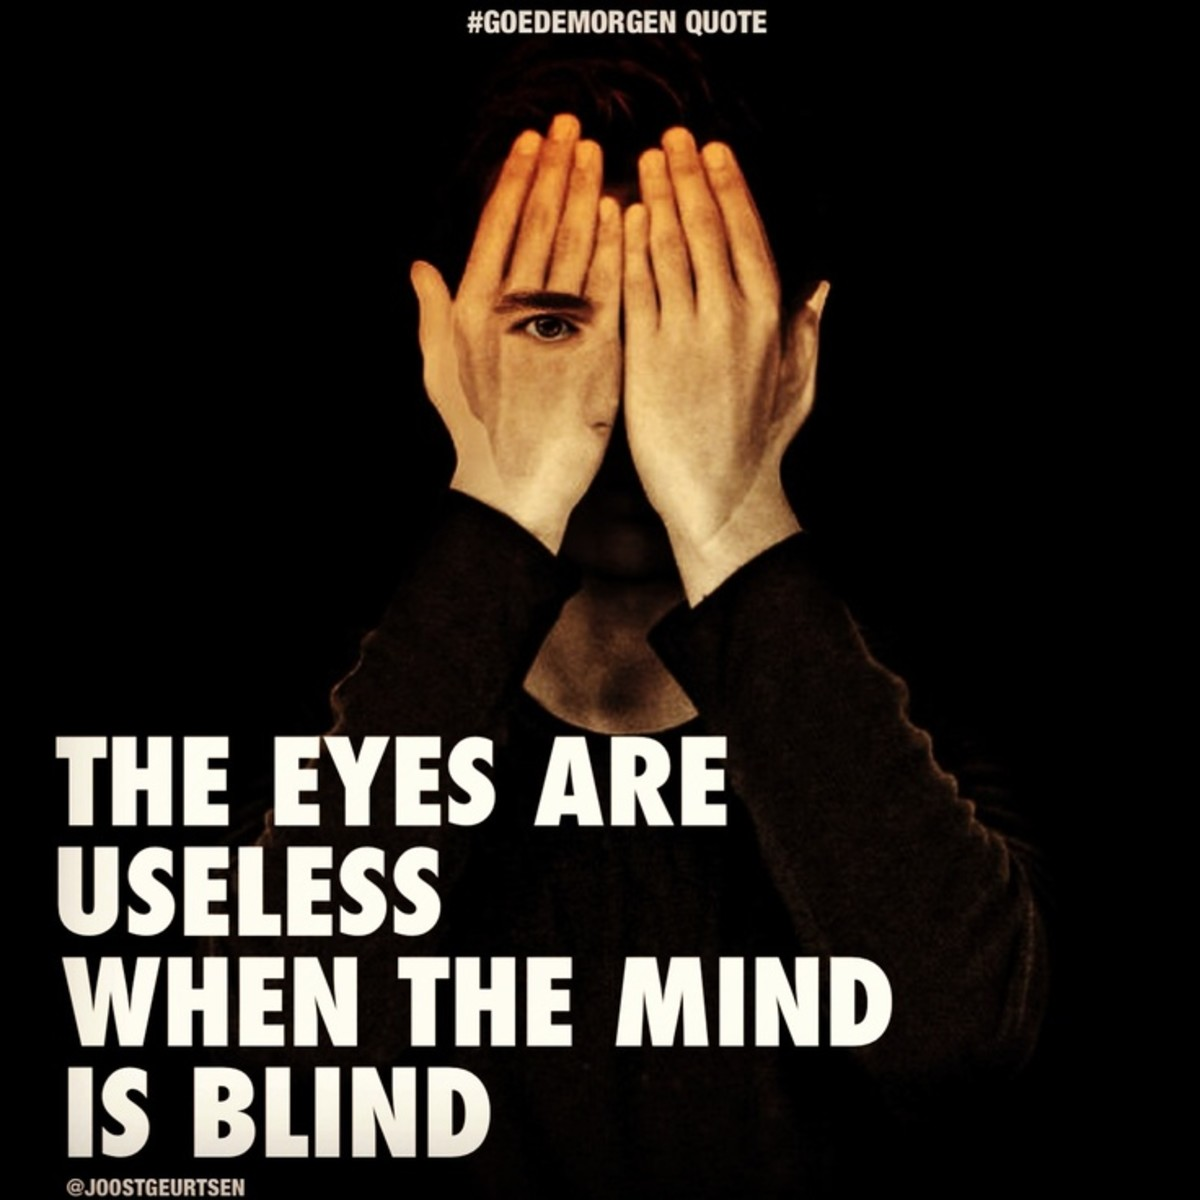 pammorrishubpagescomhubthe-eyes-are-useless-when-the-mind-is-blind